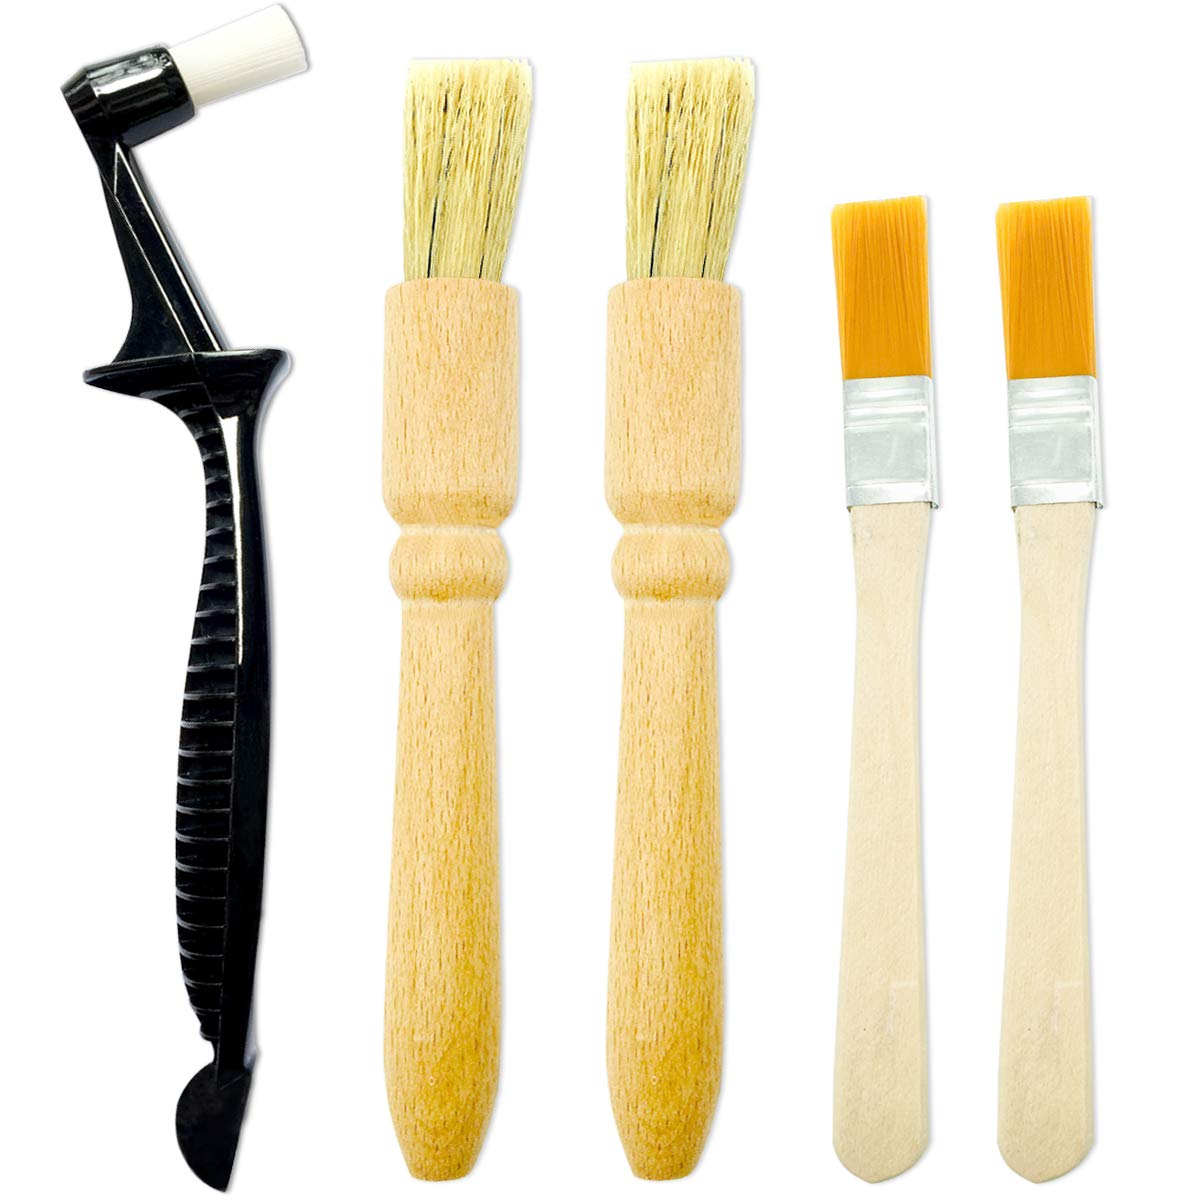 5 Pack Coffee Grinder Cleaning Brush, Heavy Wood Handle & Natural Bristles Wood Dusting Espresso Brush and Nylon Espresso Machine Brush with Spoon for Bean Grain Barista Pasta Makers Home Kitchen